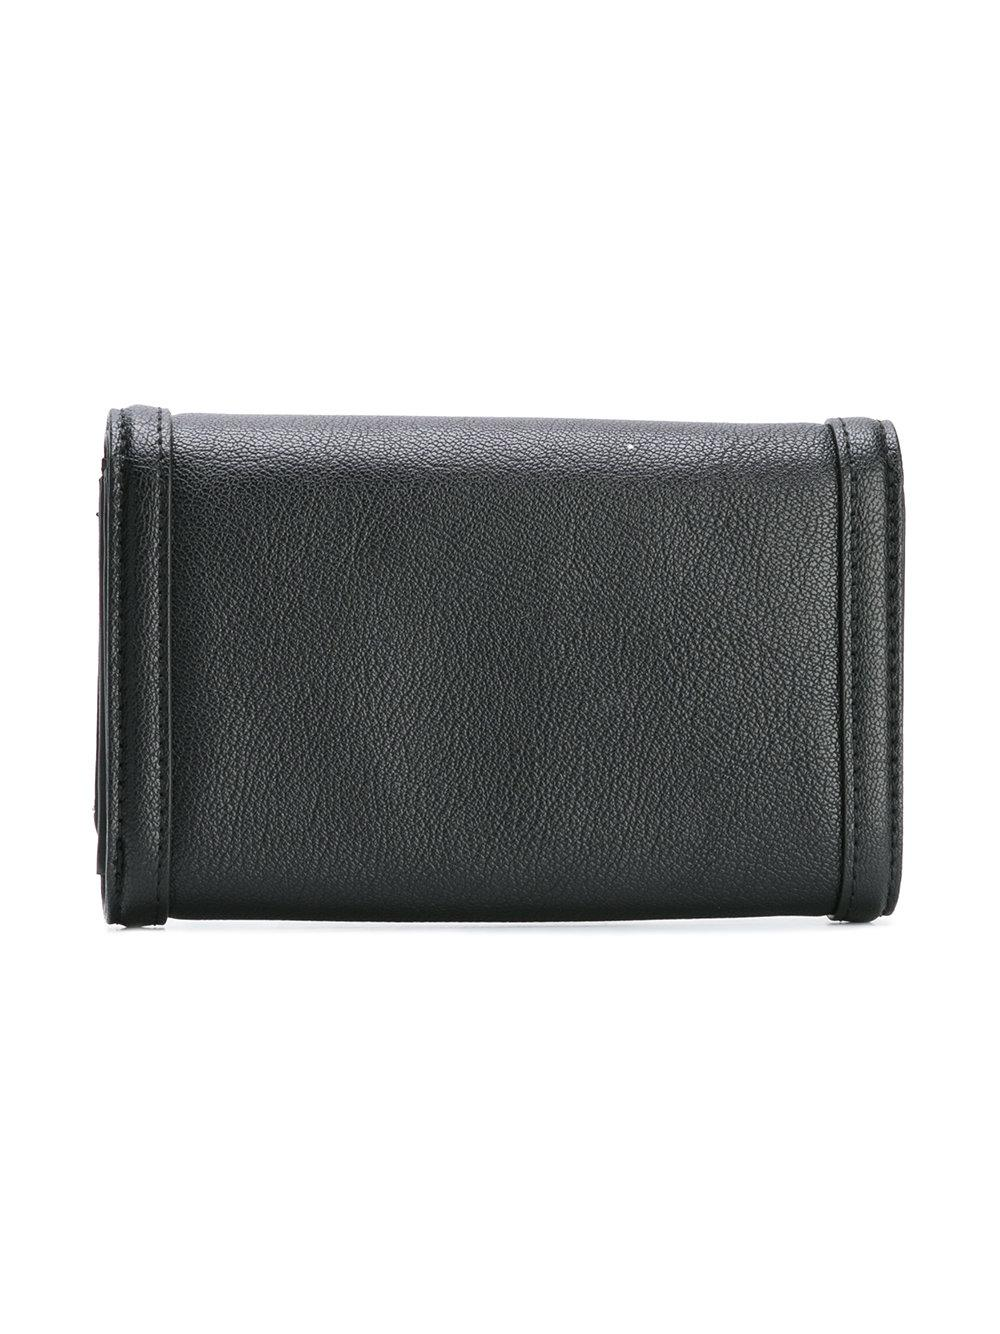 Love Moschino Snap Wallet In Black For Men Lyst